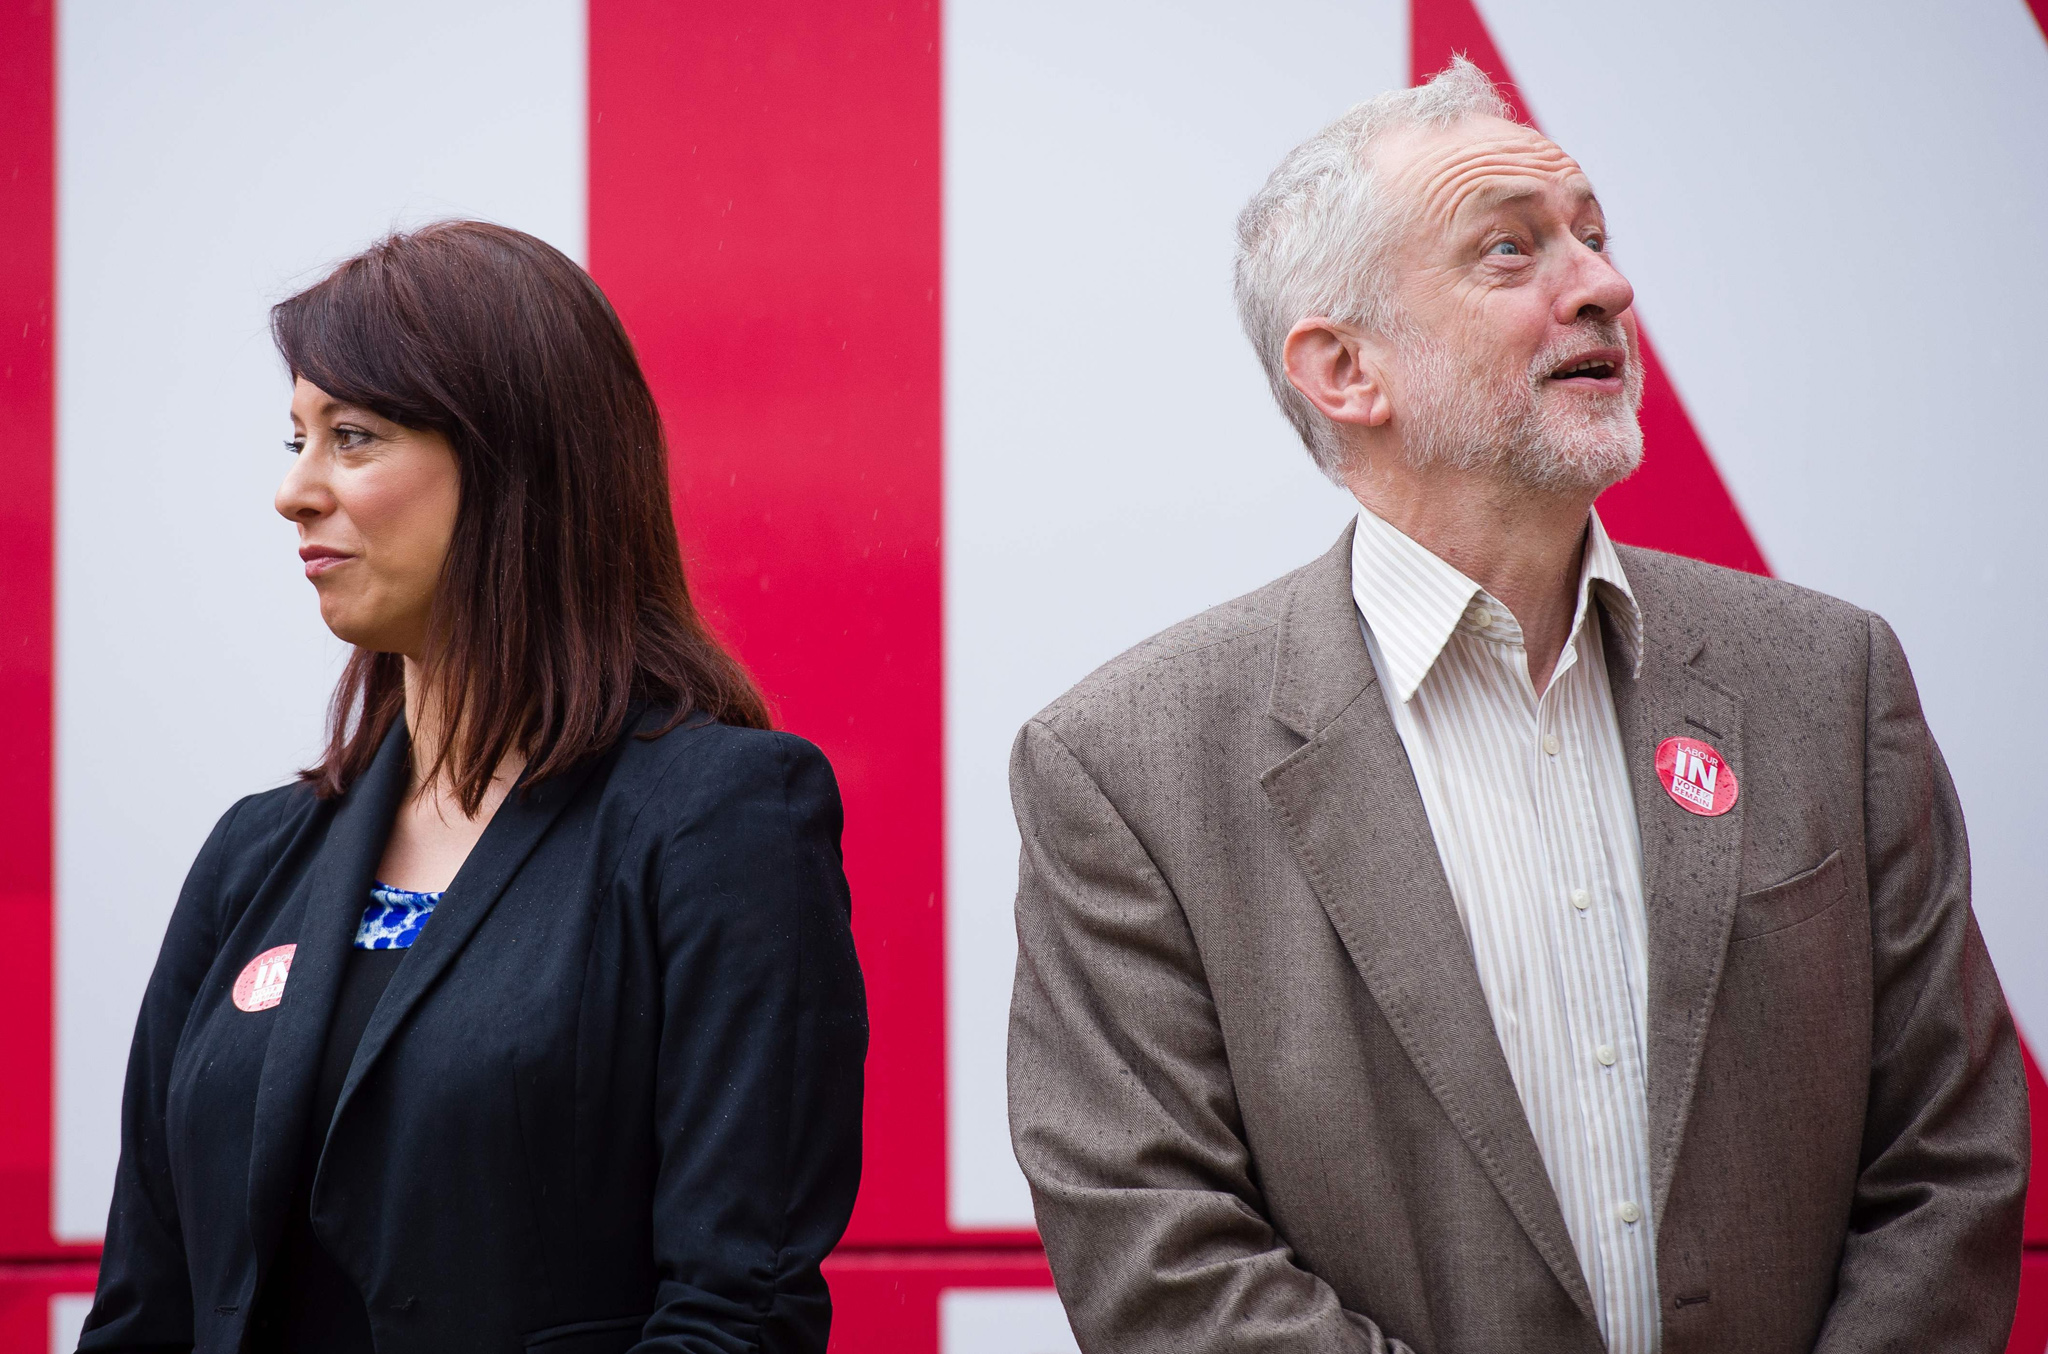 "Britain's opposition Labour Party leader Jeremy Corbyn and shadow Minister for Young People, Gloria De Piero (L) stand in front of the ""Labour In For Britain"" campaign bus at a launch in central London, on May 10, 2016. The referendum campaign was picking up pace again after regional and local elections last Thursday which saw Labour's Sadiq Khan elected as London's new mayor, and pro-independence nationalists returned to power in Scotland, albeit without a majority. Main opposition Labour leader Jeremy Corbyn was now being urged to get more involved in the EU referendum campaign.  / AFP PHOTO / LEON NEALLEON NEAL/AFP/Getty Images"